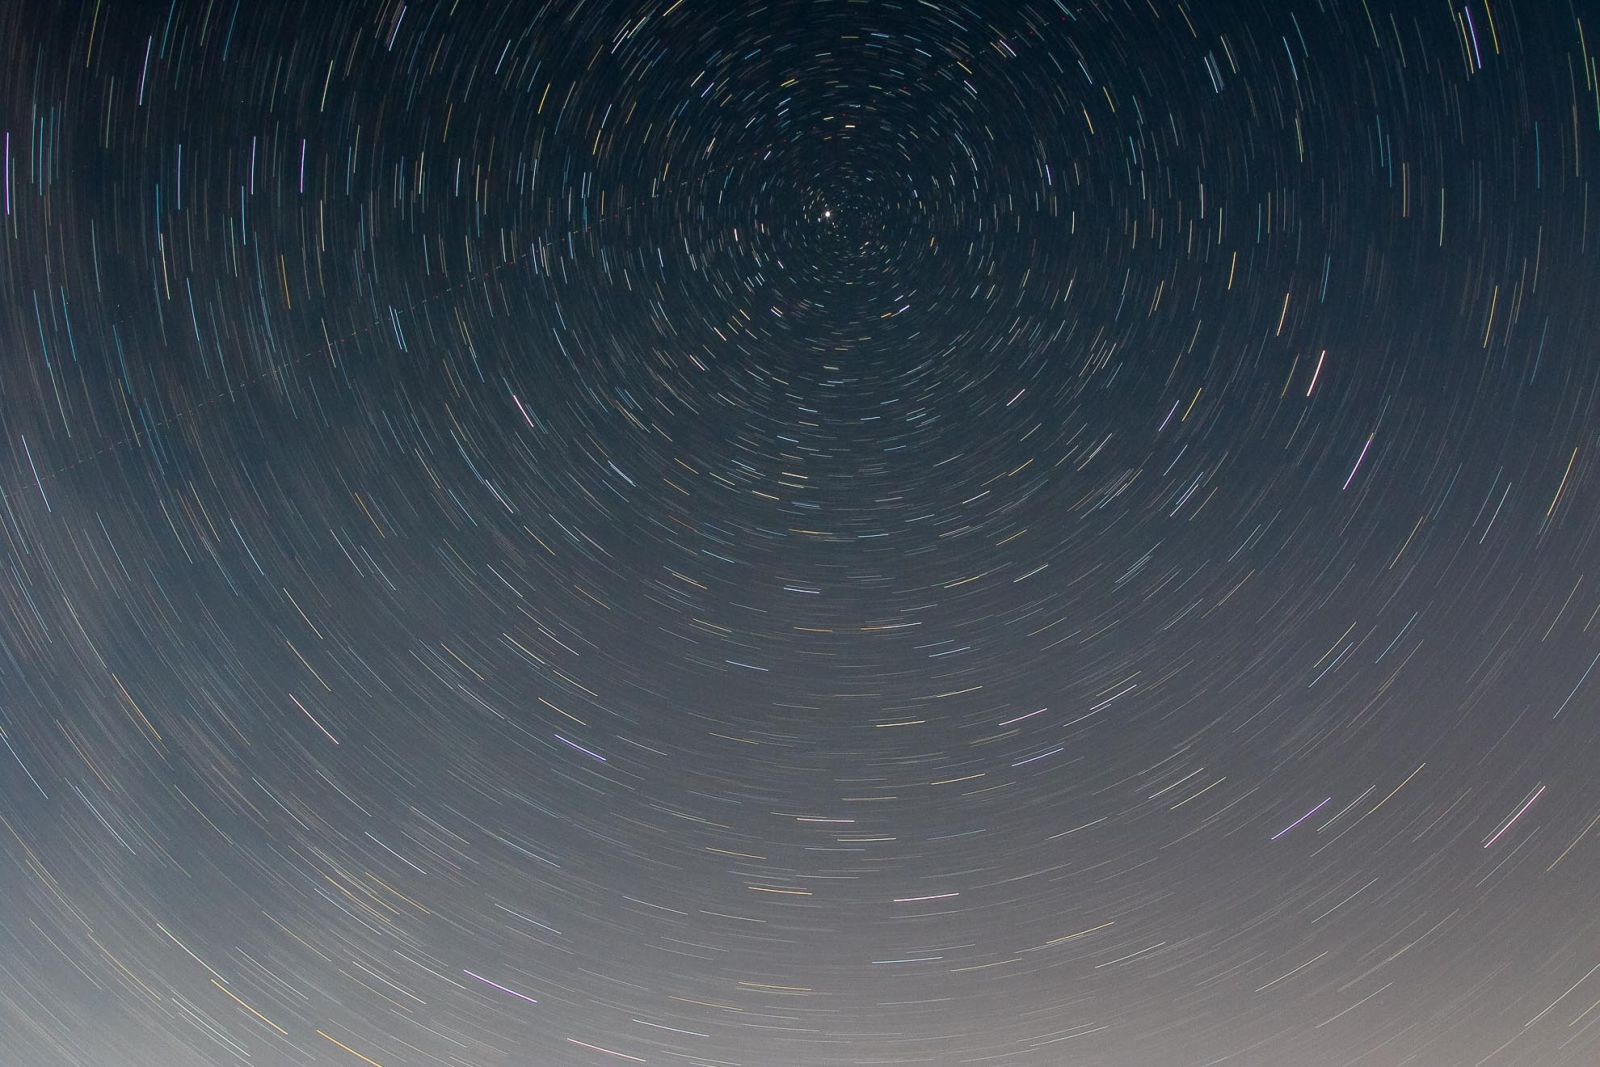 Star trails 2015   24mm, 45mins, 1600ISO